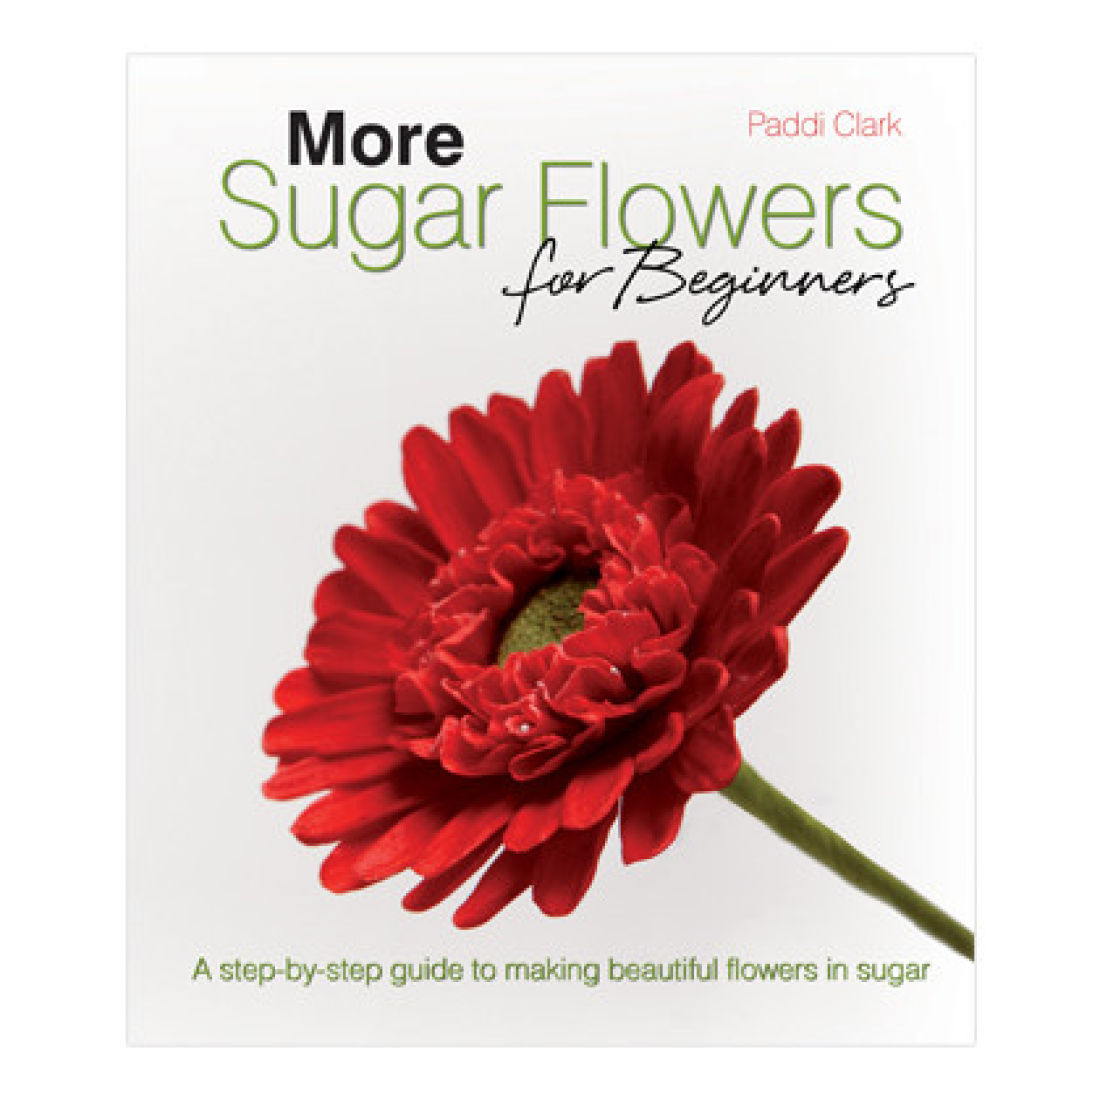 More sugar flowers for beginners squires kitchen shop more sugar flowers for beginners izmirmasajfo